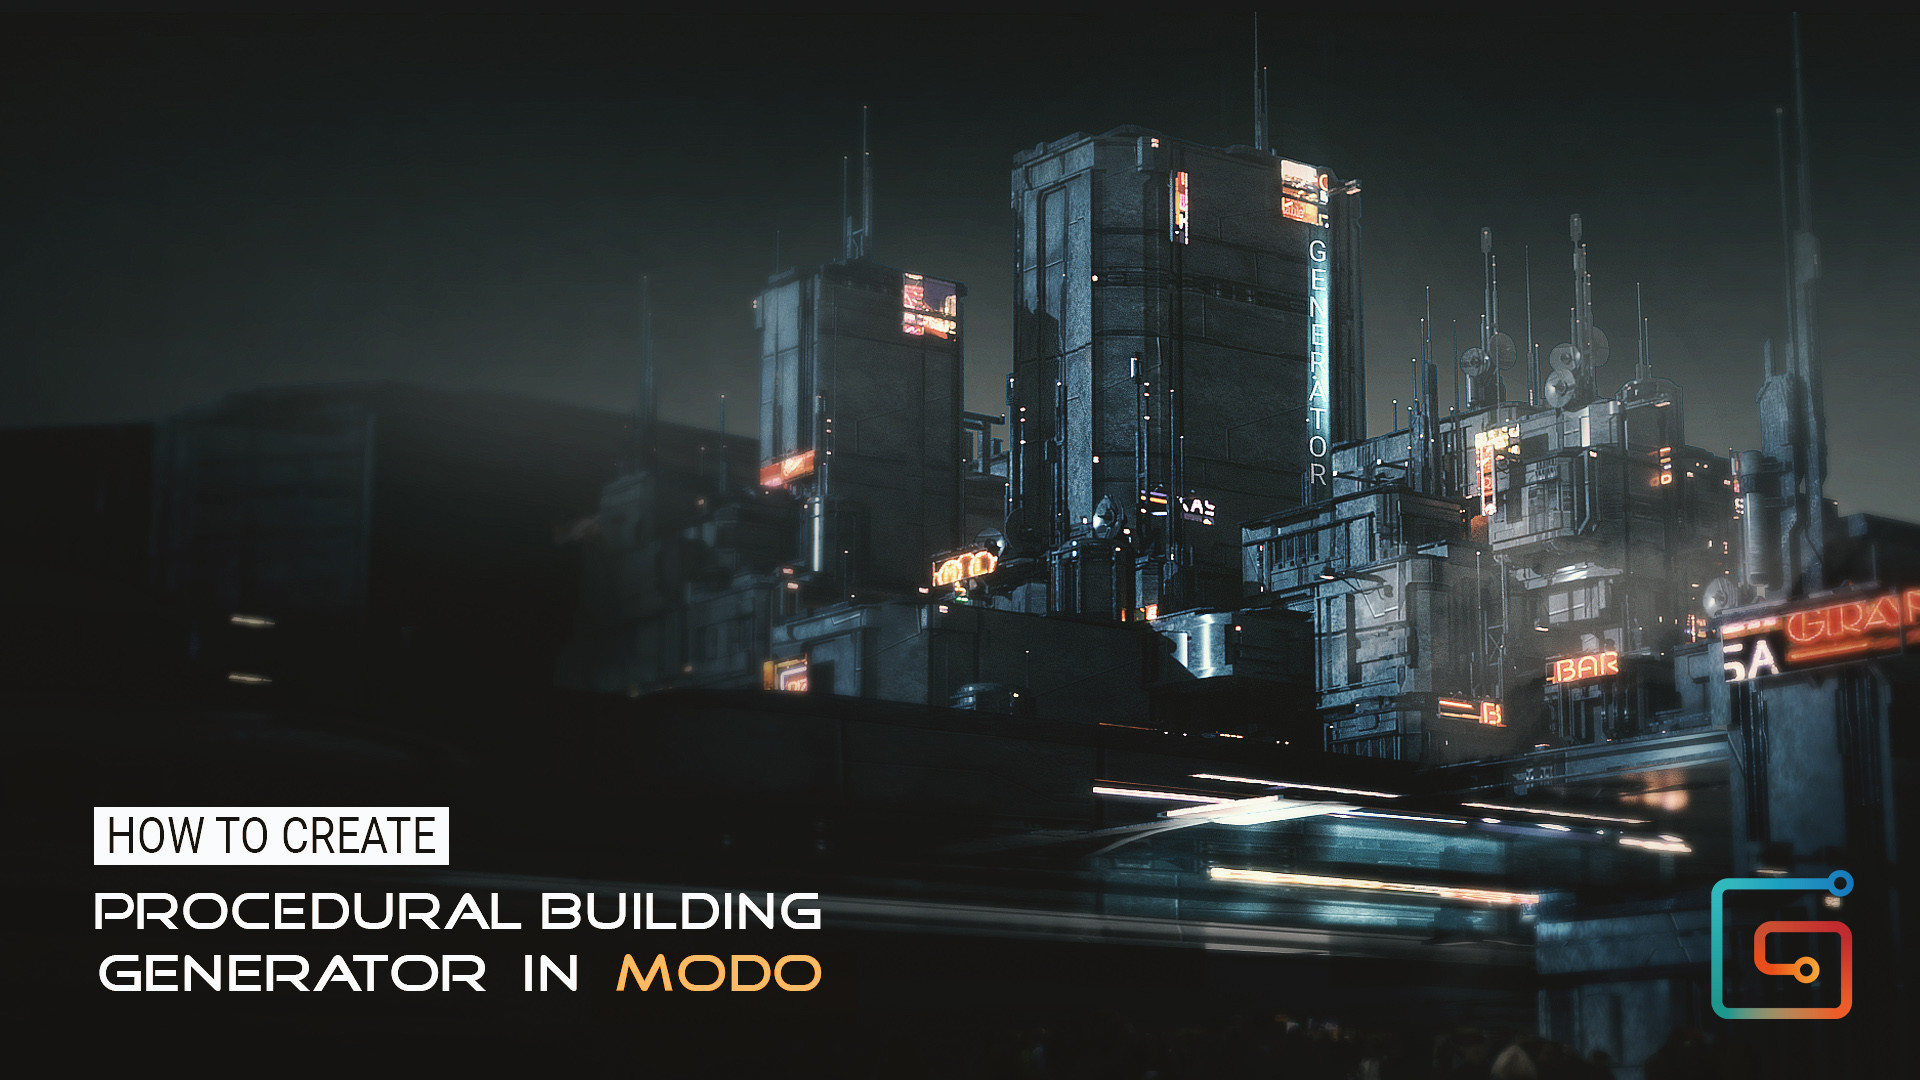 ArtStation - Gumroad - How to create Procedural Building